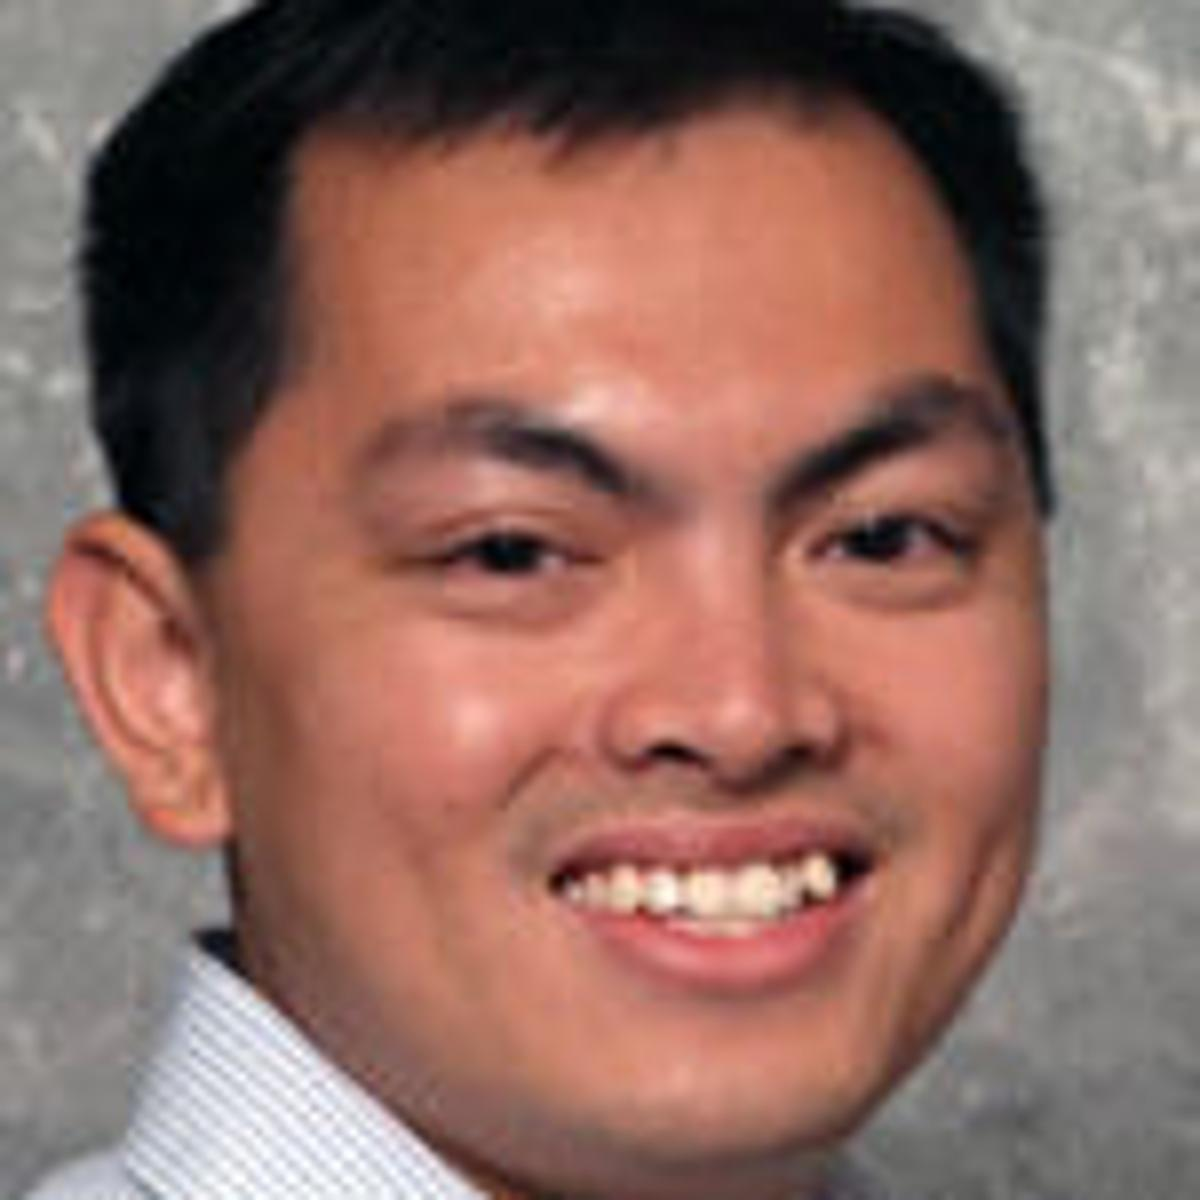 Casey: Medical fellows make the finals in high-profile